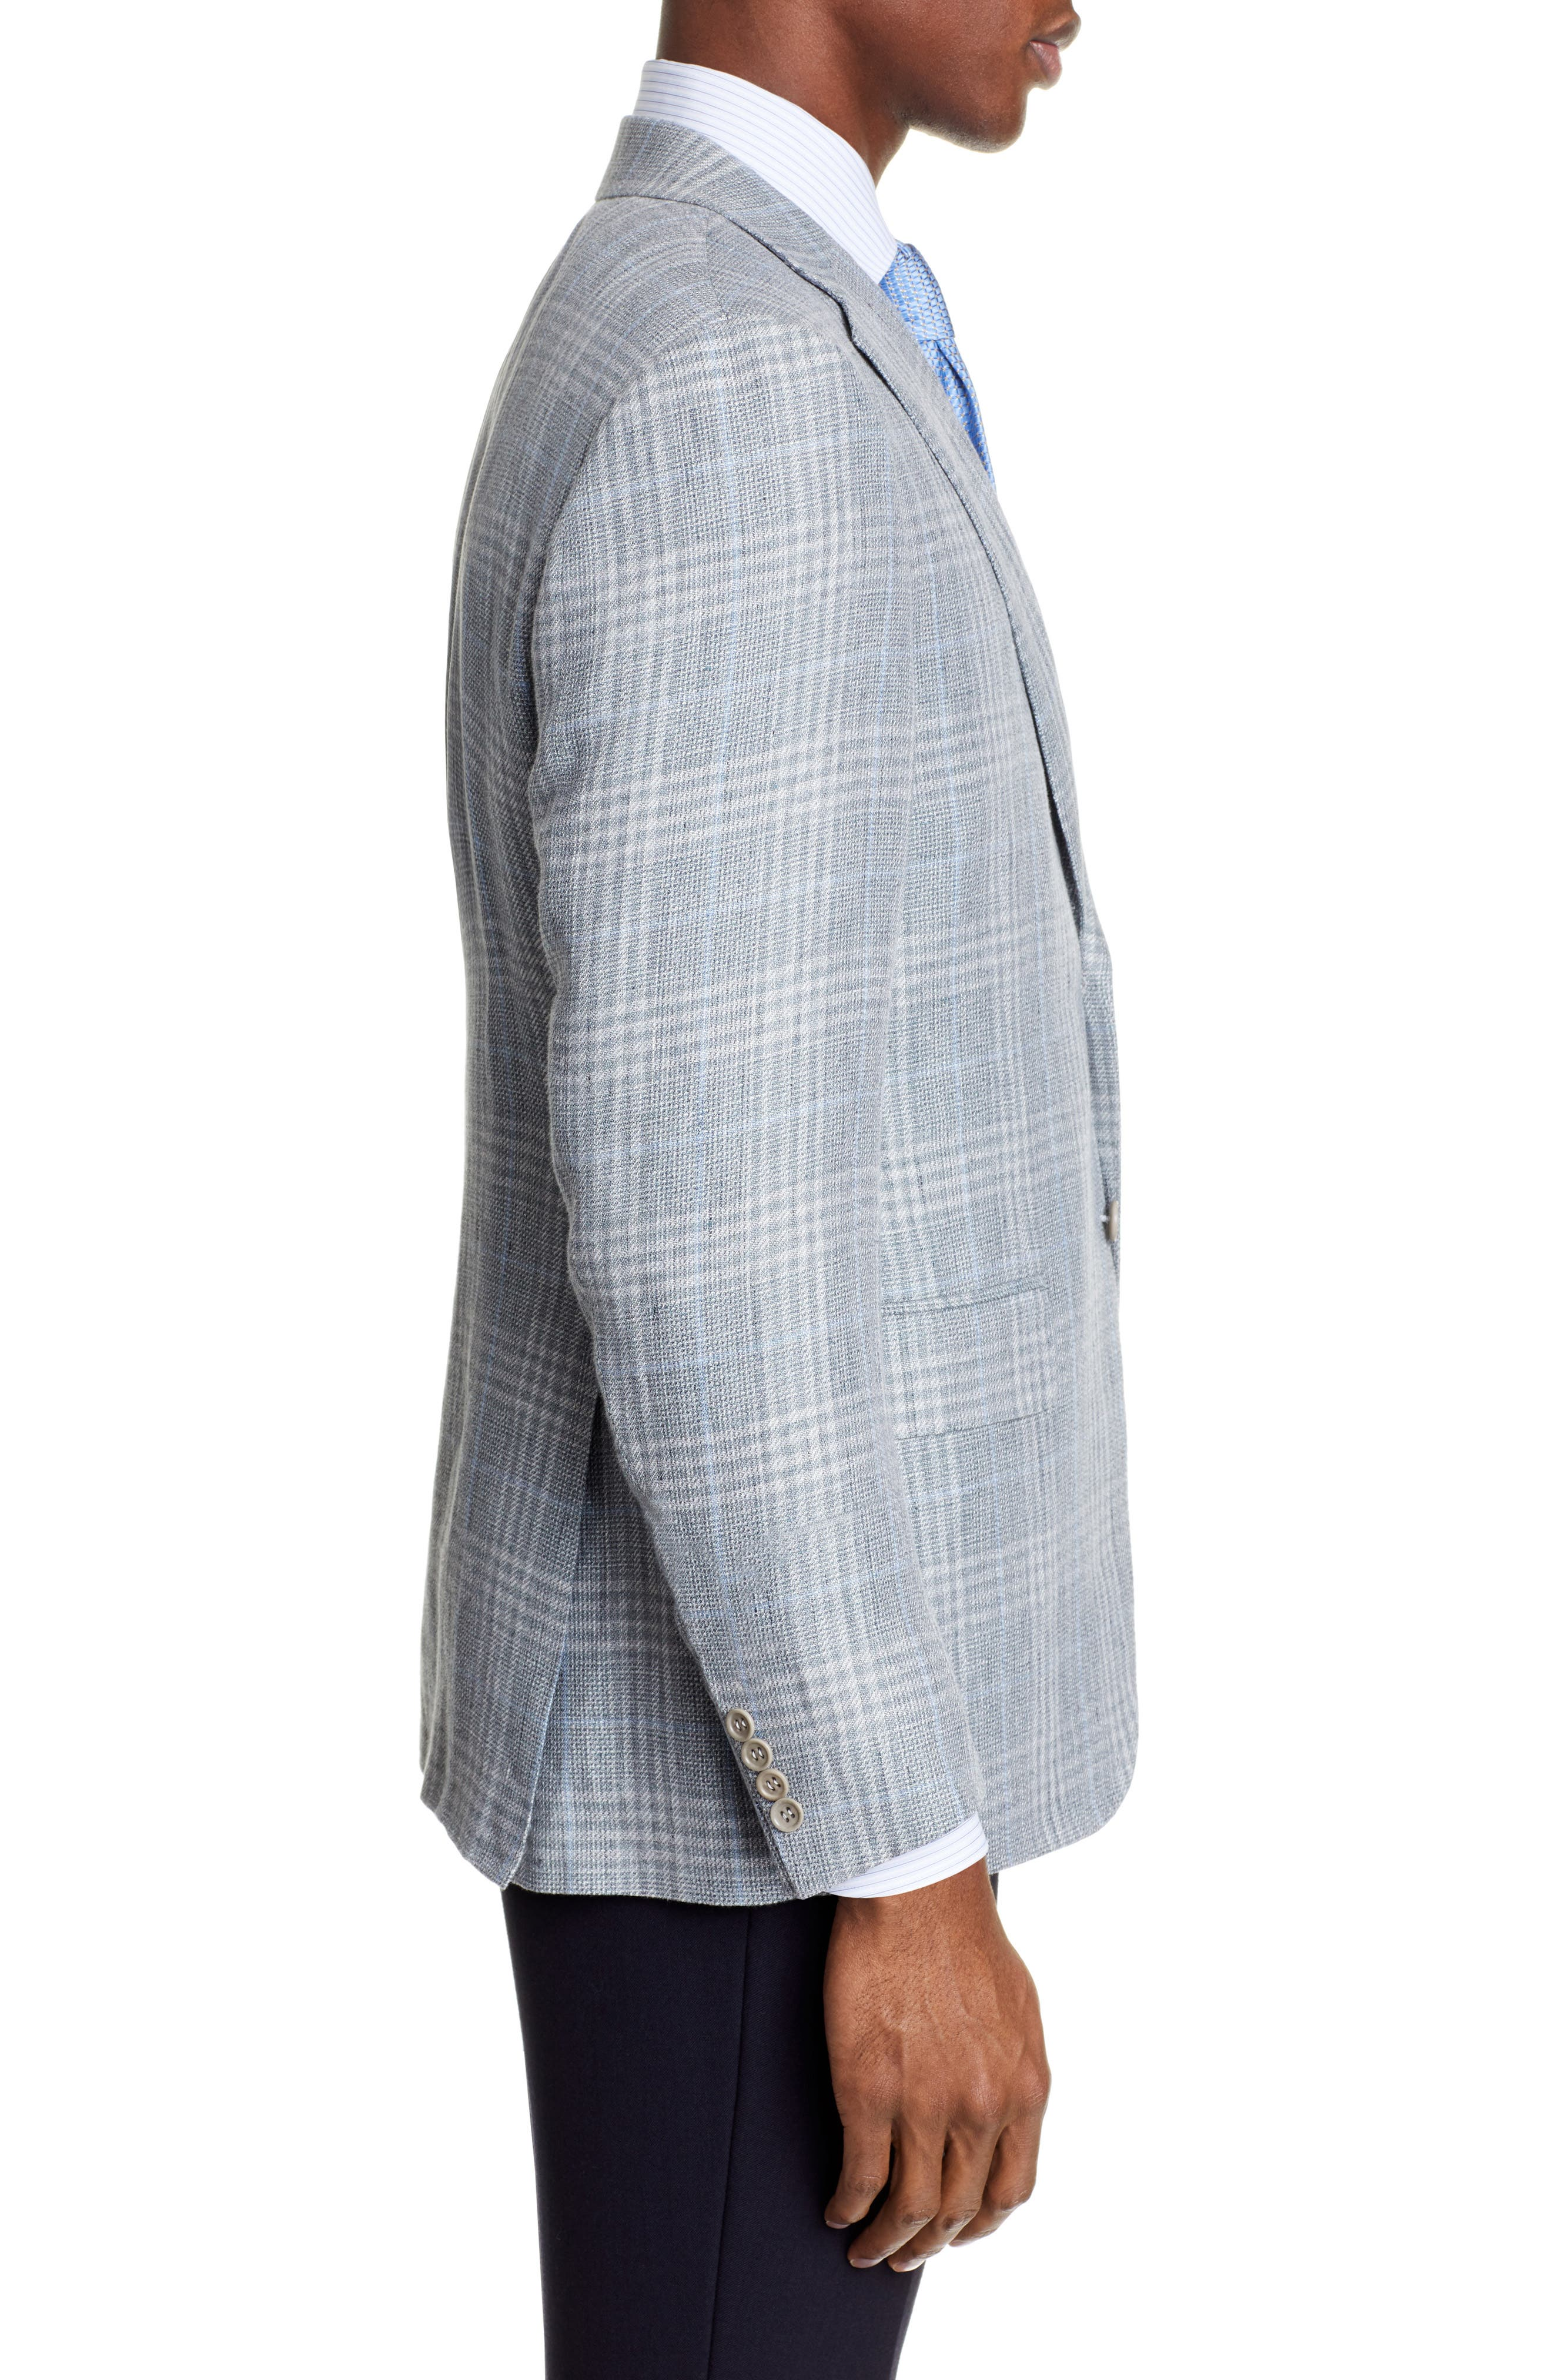 CANALI, Sienna Classic Fit Plaid Linen & Wool Sport Coat, Alternate thumbnail 3, color, LIGHT GREEN